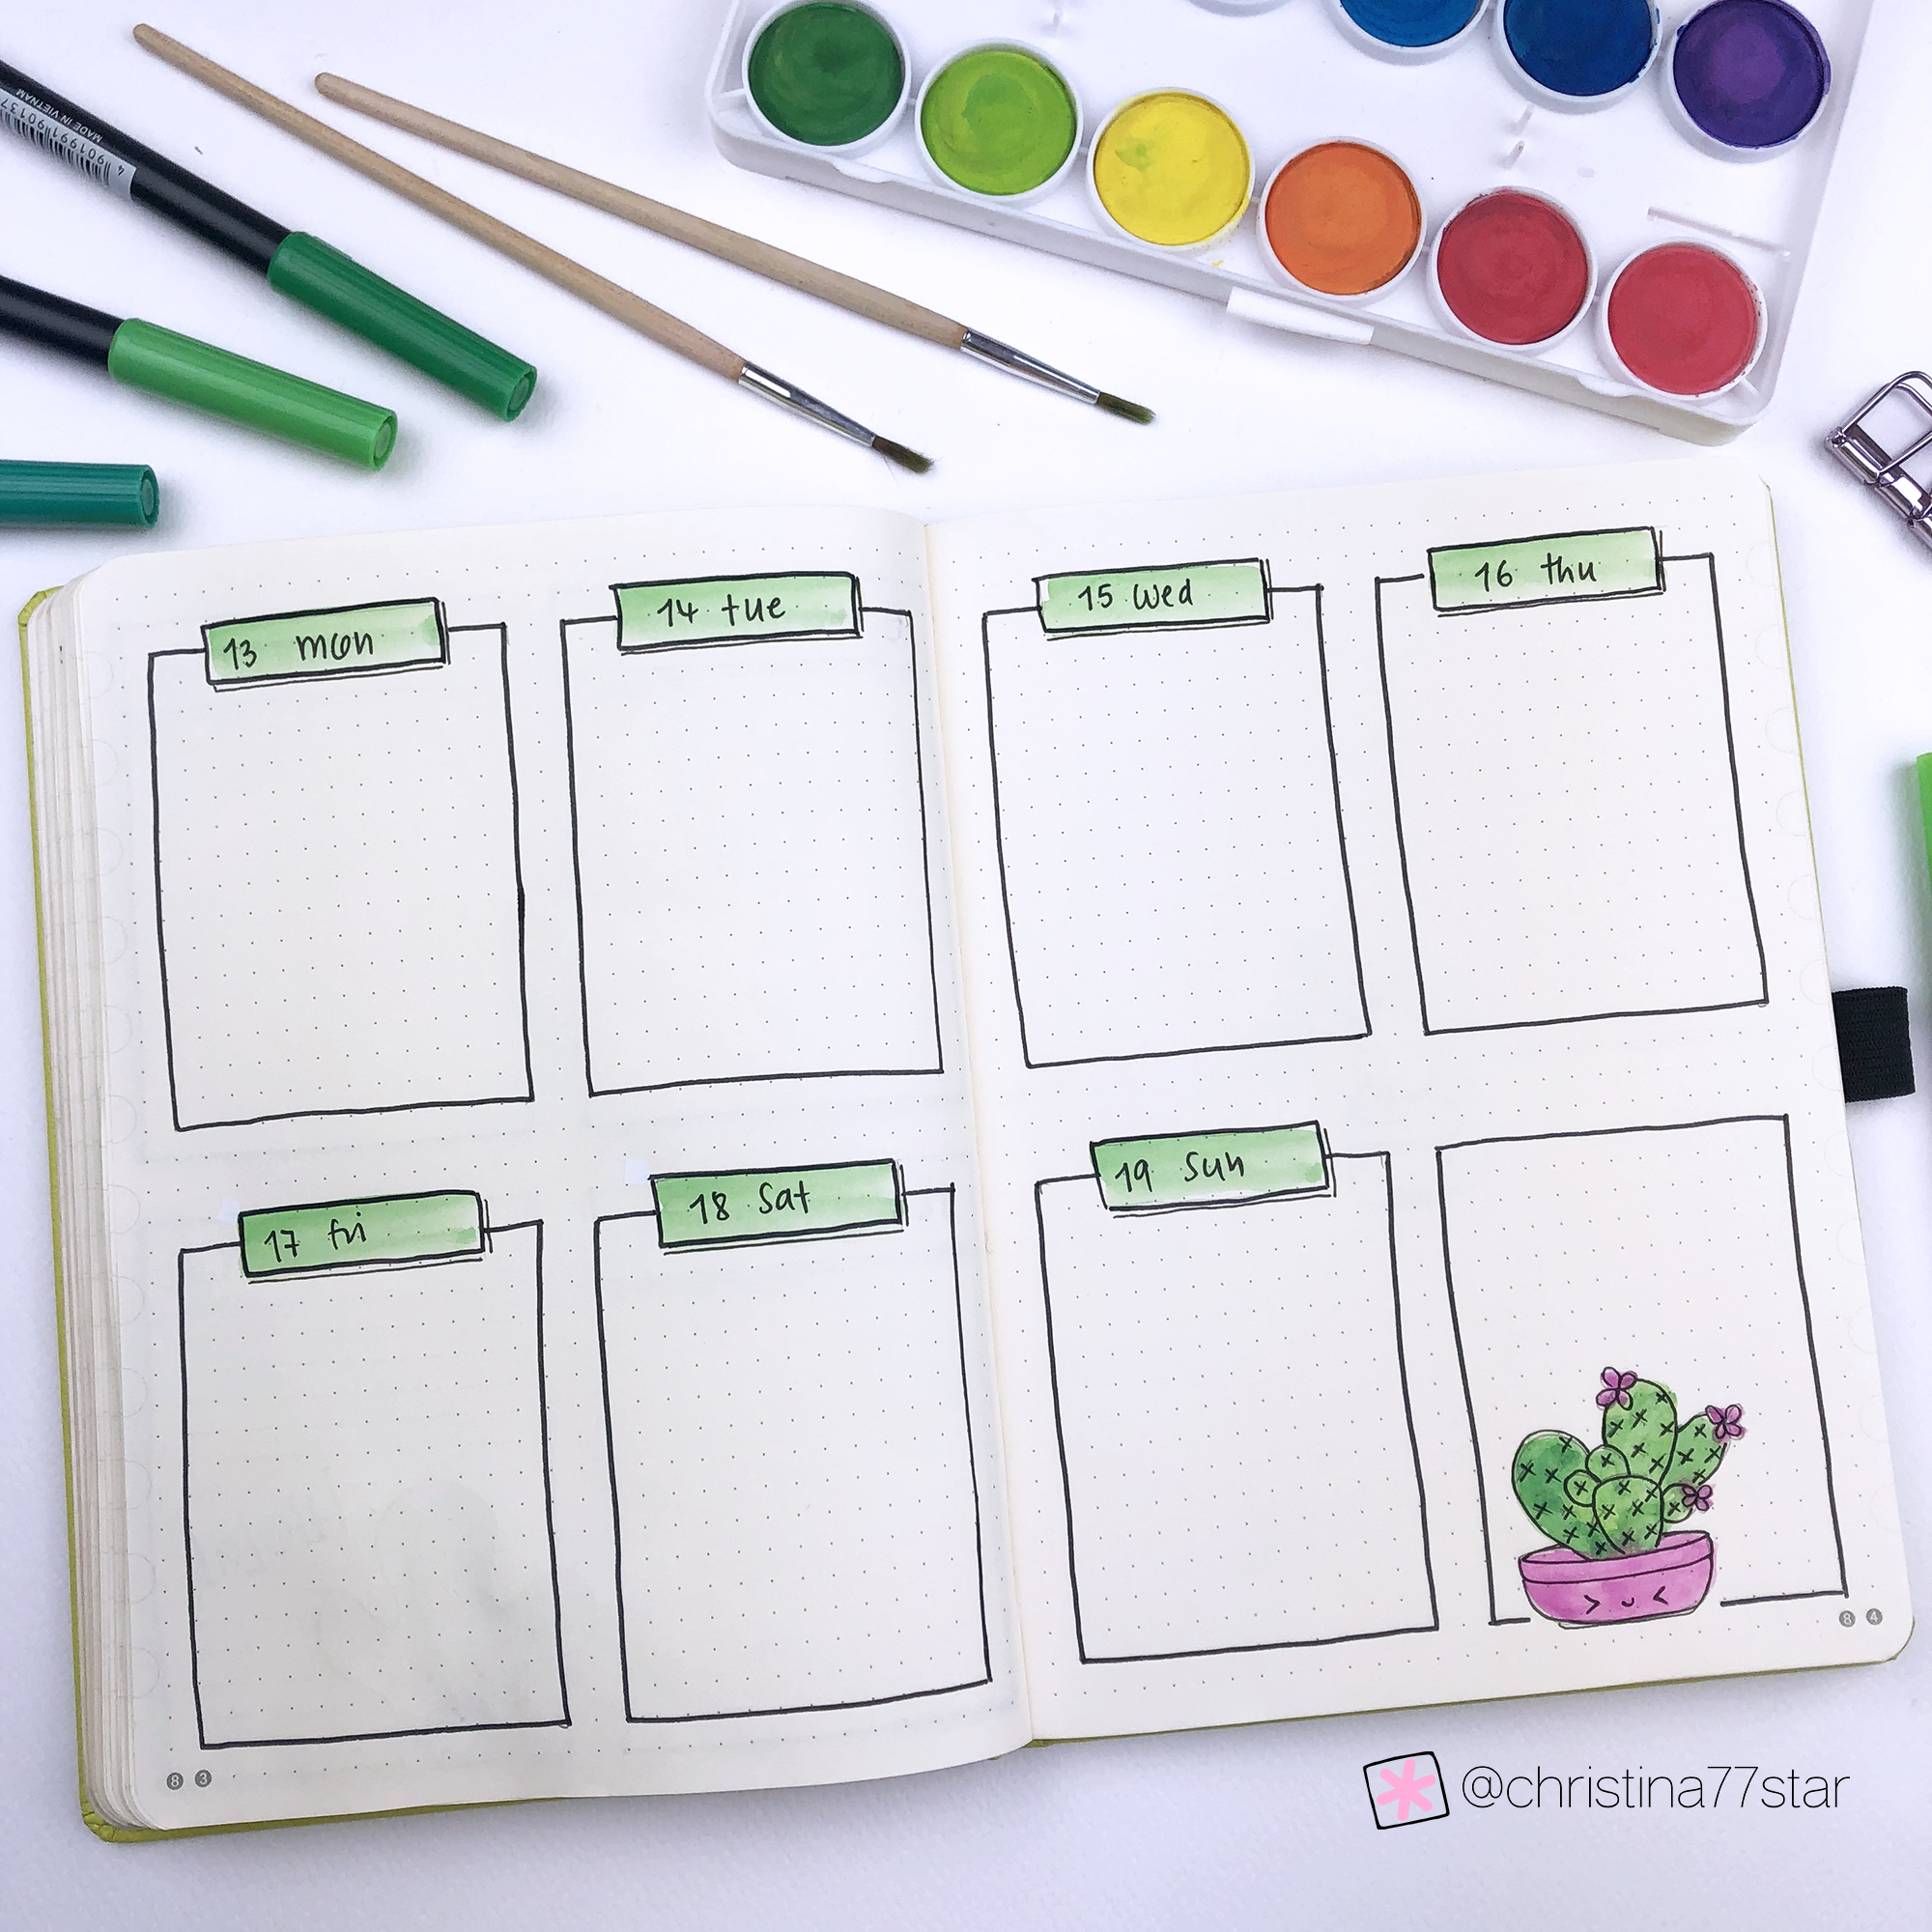 4 Weekly Spread Ideas for your Bullet Journal - May 2019 - www.christina77star.net